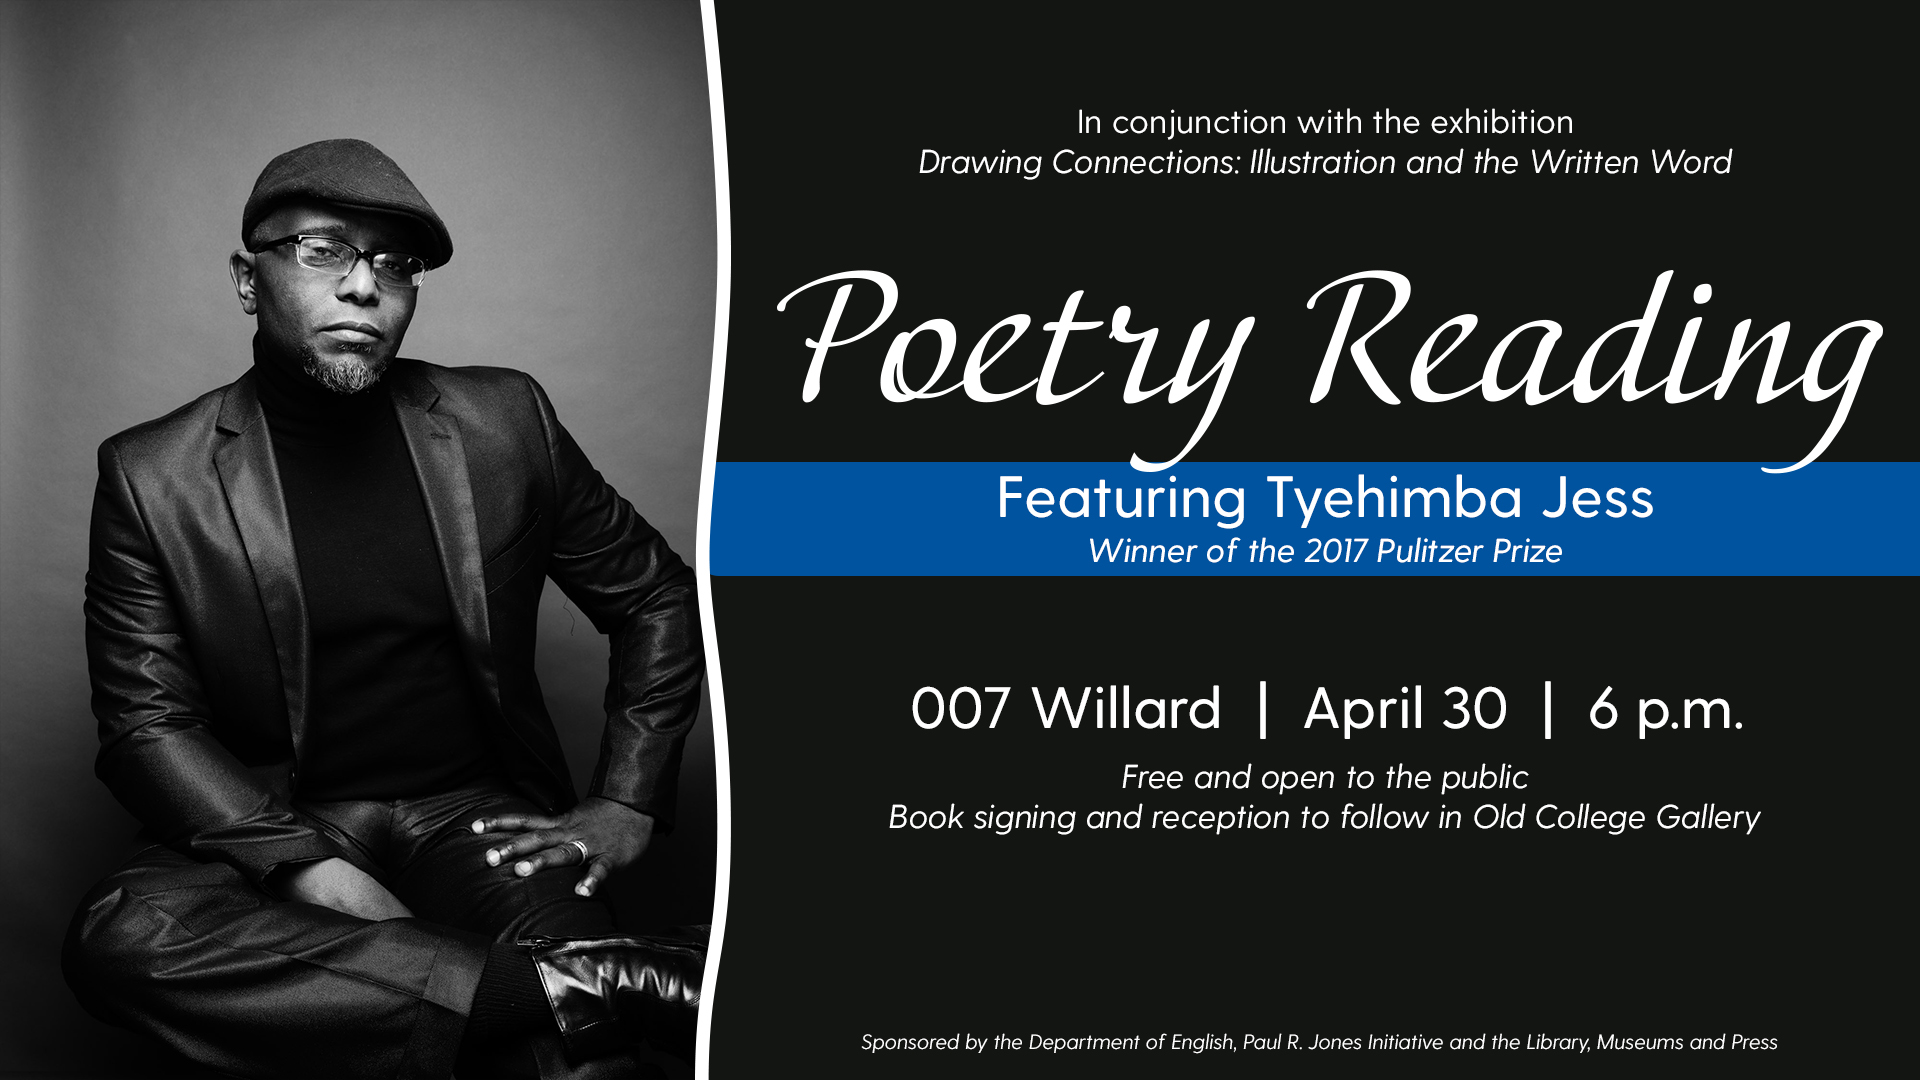 Promotional Image for Tyehimba Jess Poetry Reading